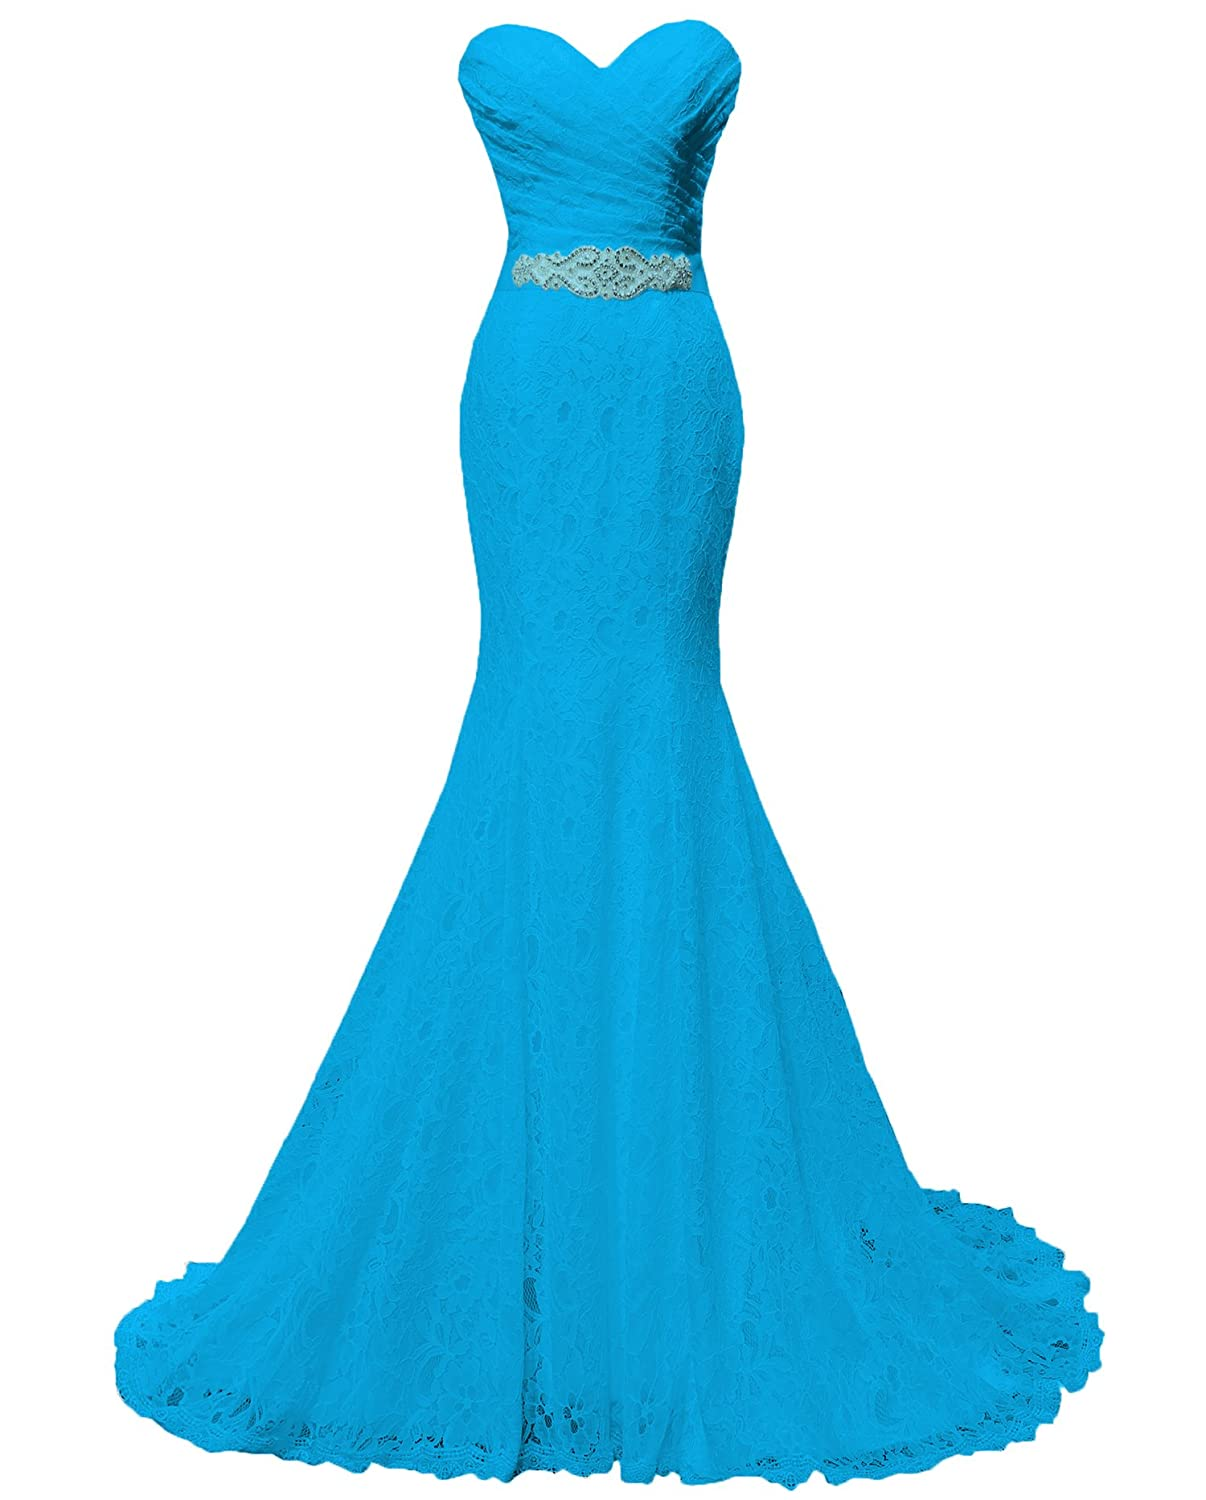 Solovedress Women's Lace Wedding Dress Mermaid Evening Dress Bridal Gown with Sash W0001